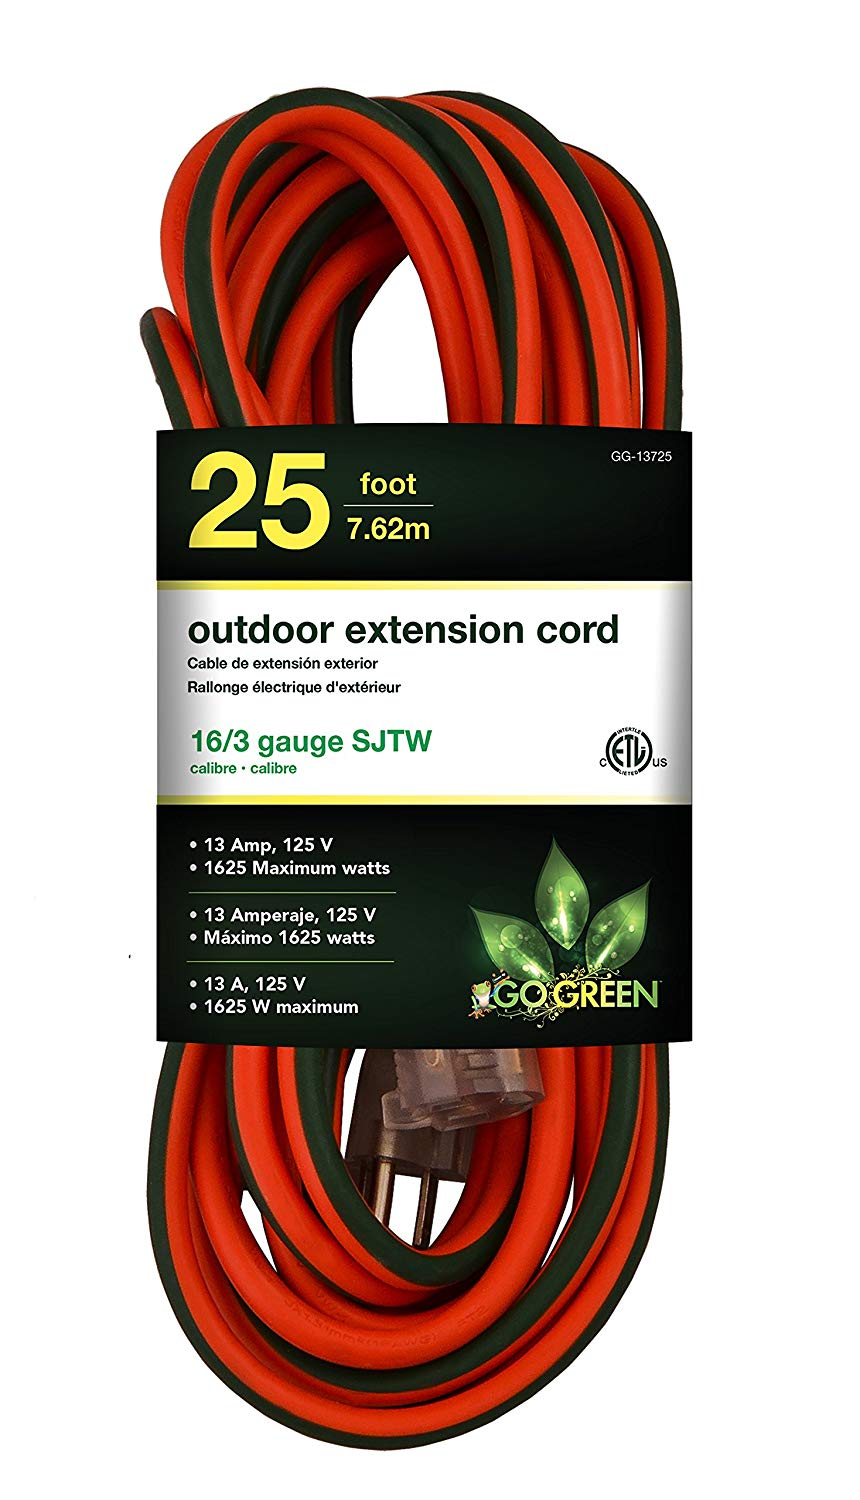 GoGreen Power GG-13725